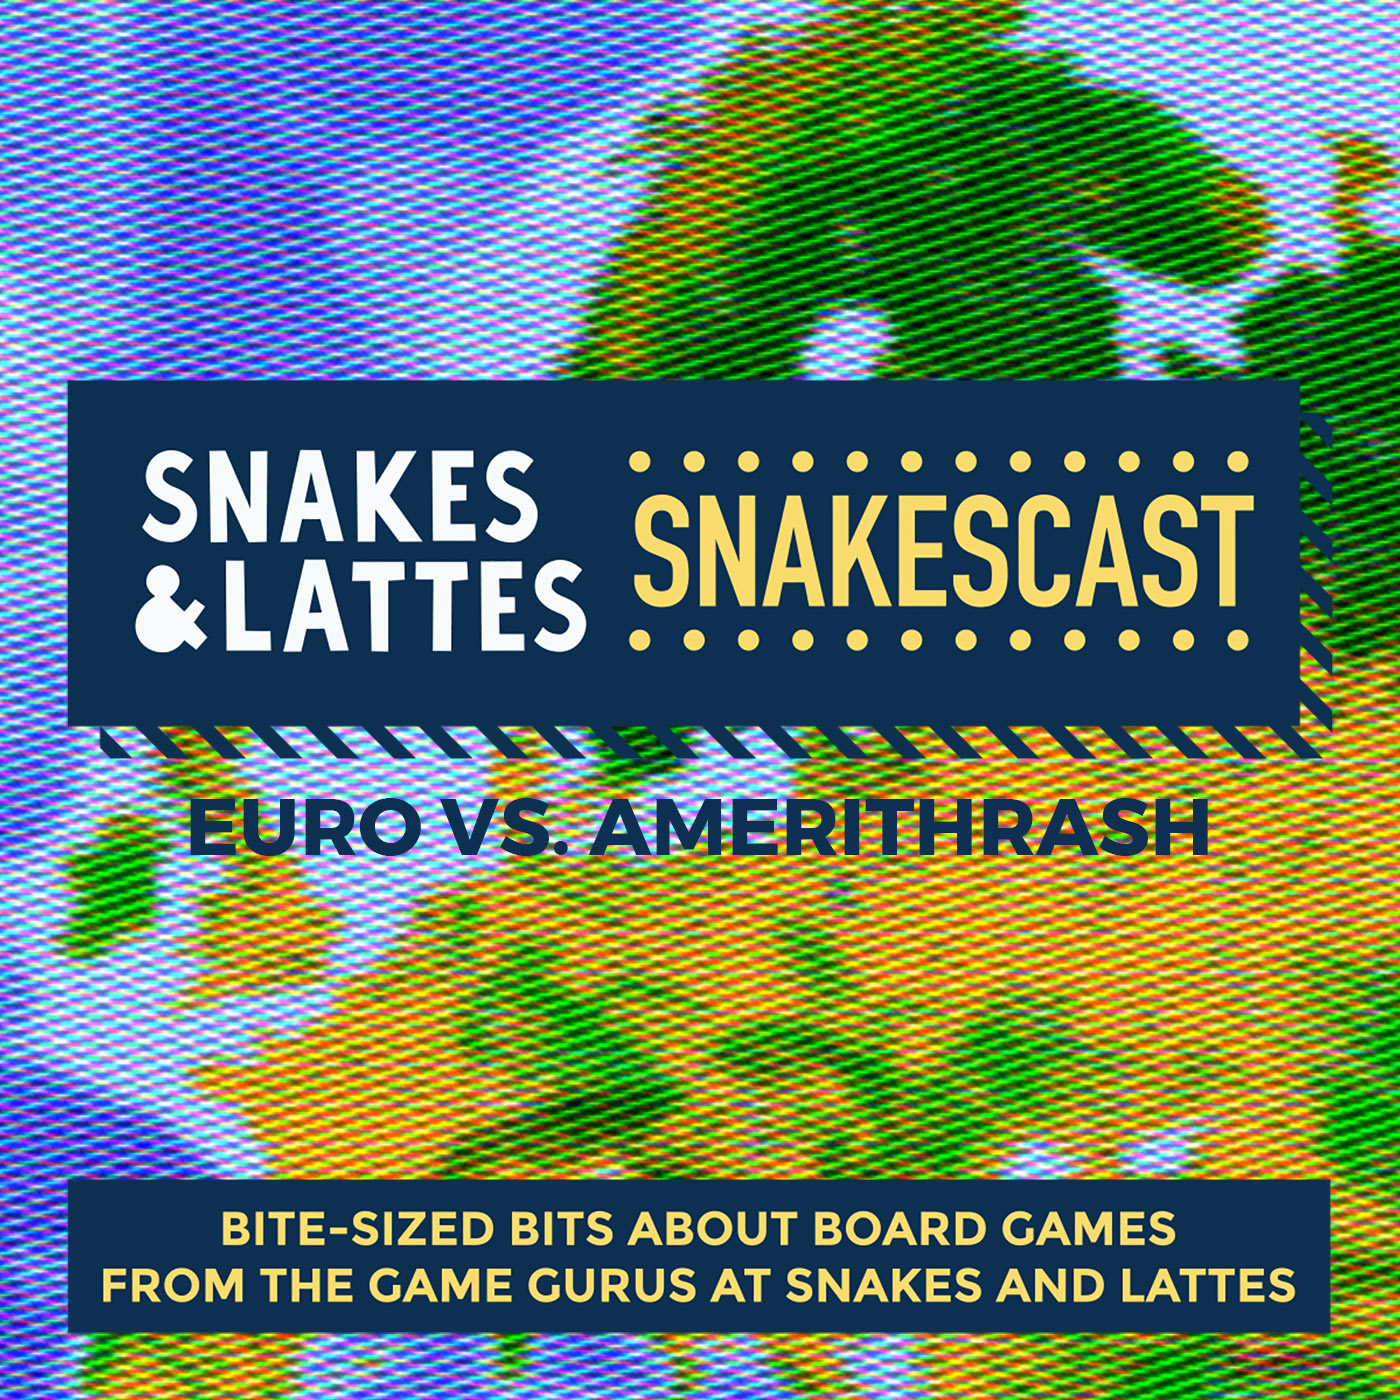 Euro vs. Amerithrash, Part 3 - The differences, and coming together